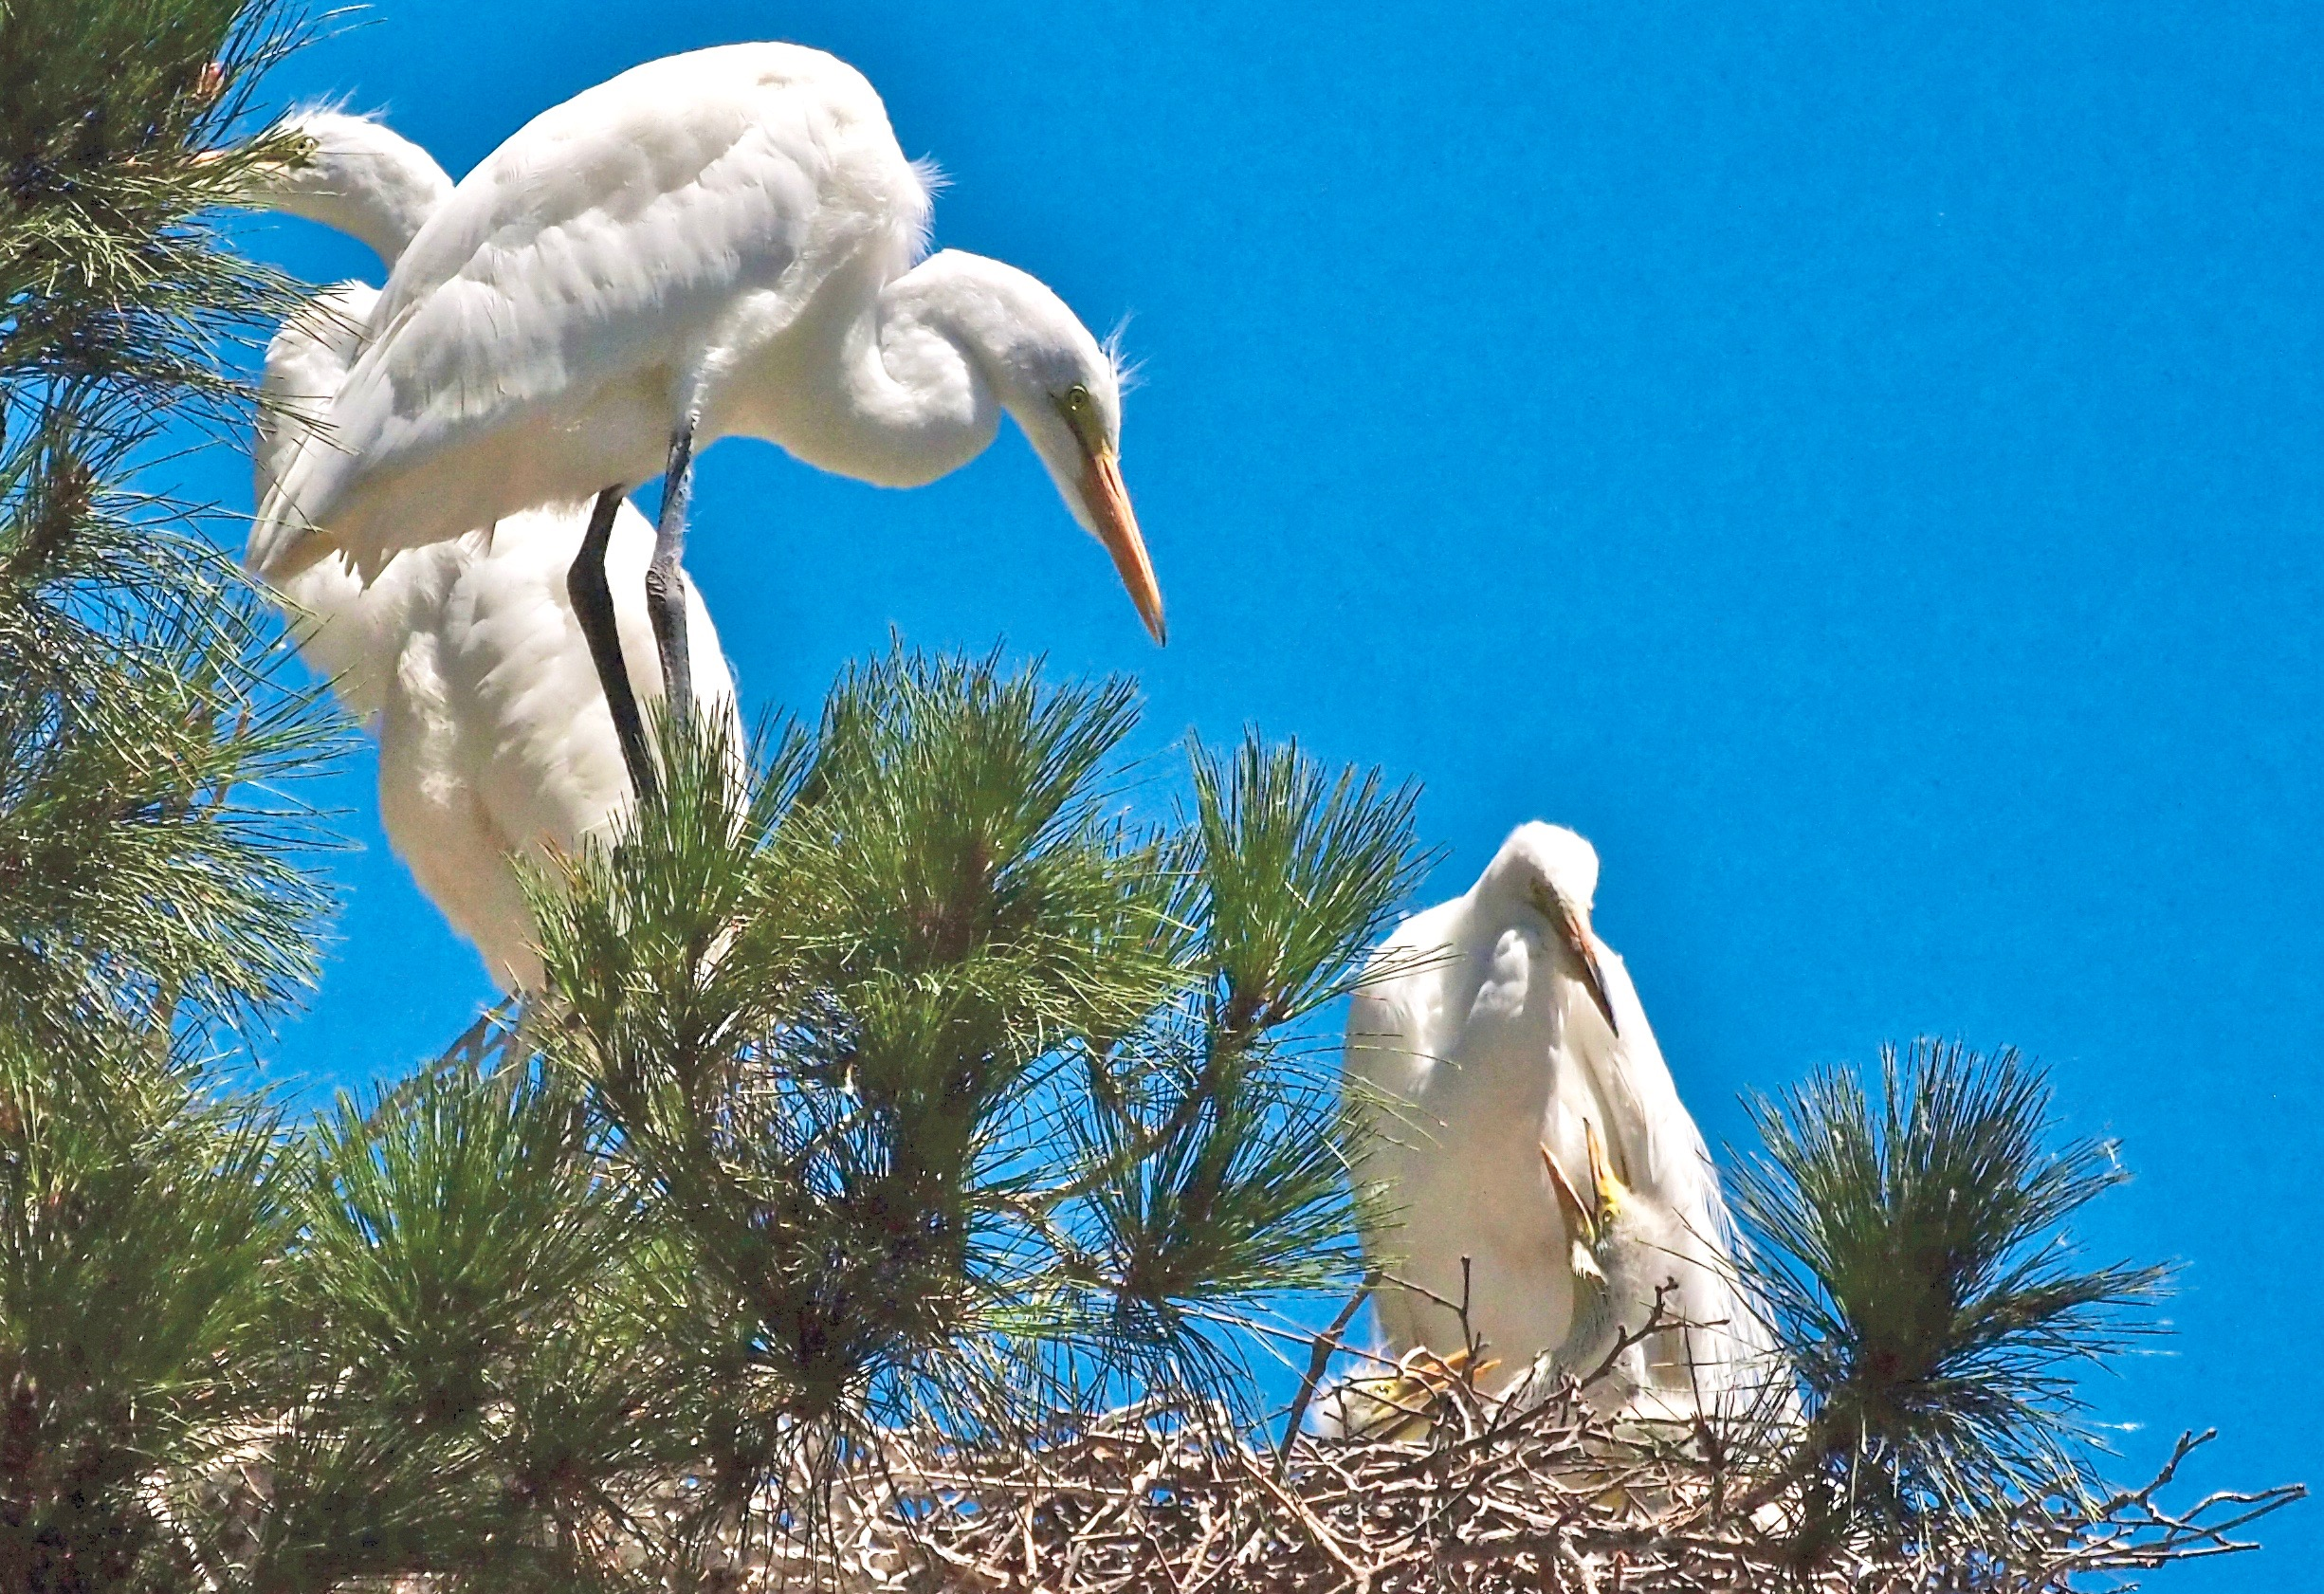 GREAT EGRET FAMILY  Intimate images stun with grace and beauty as pine needles disappear. In other years this view would be obstructed or hidden. Here, during this nationally celebrated Year Of The Bird, the view of the egret family seems especially sacred.